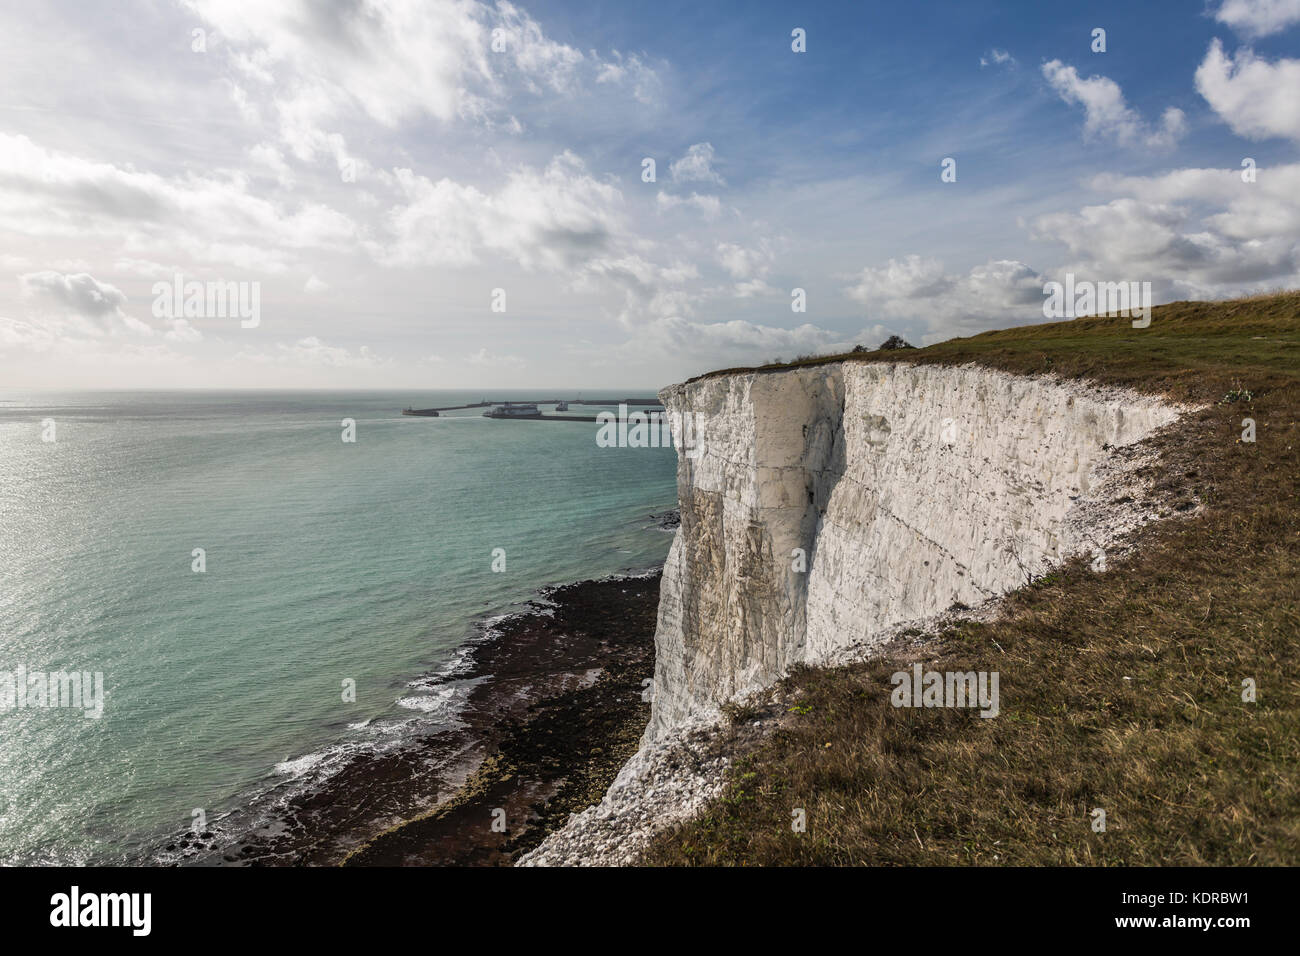 The White Cliffs of Dover - Stock Image